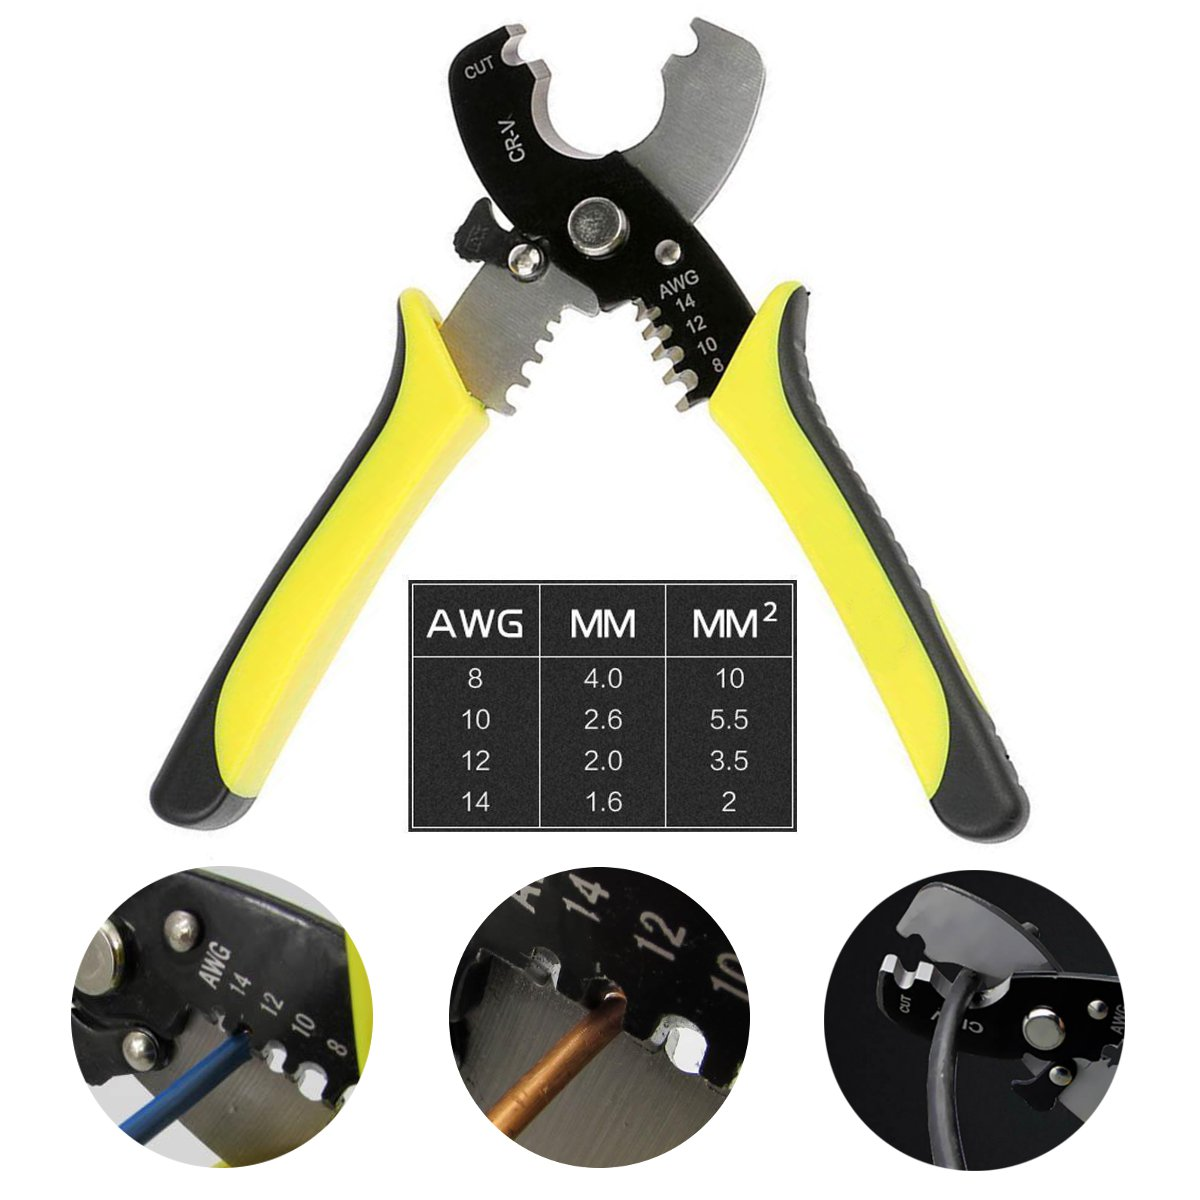 7inch Versatile Electric Cable Cutter Wire Stripping Plier Hand Tool 14/12/10/8AWG